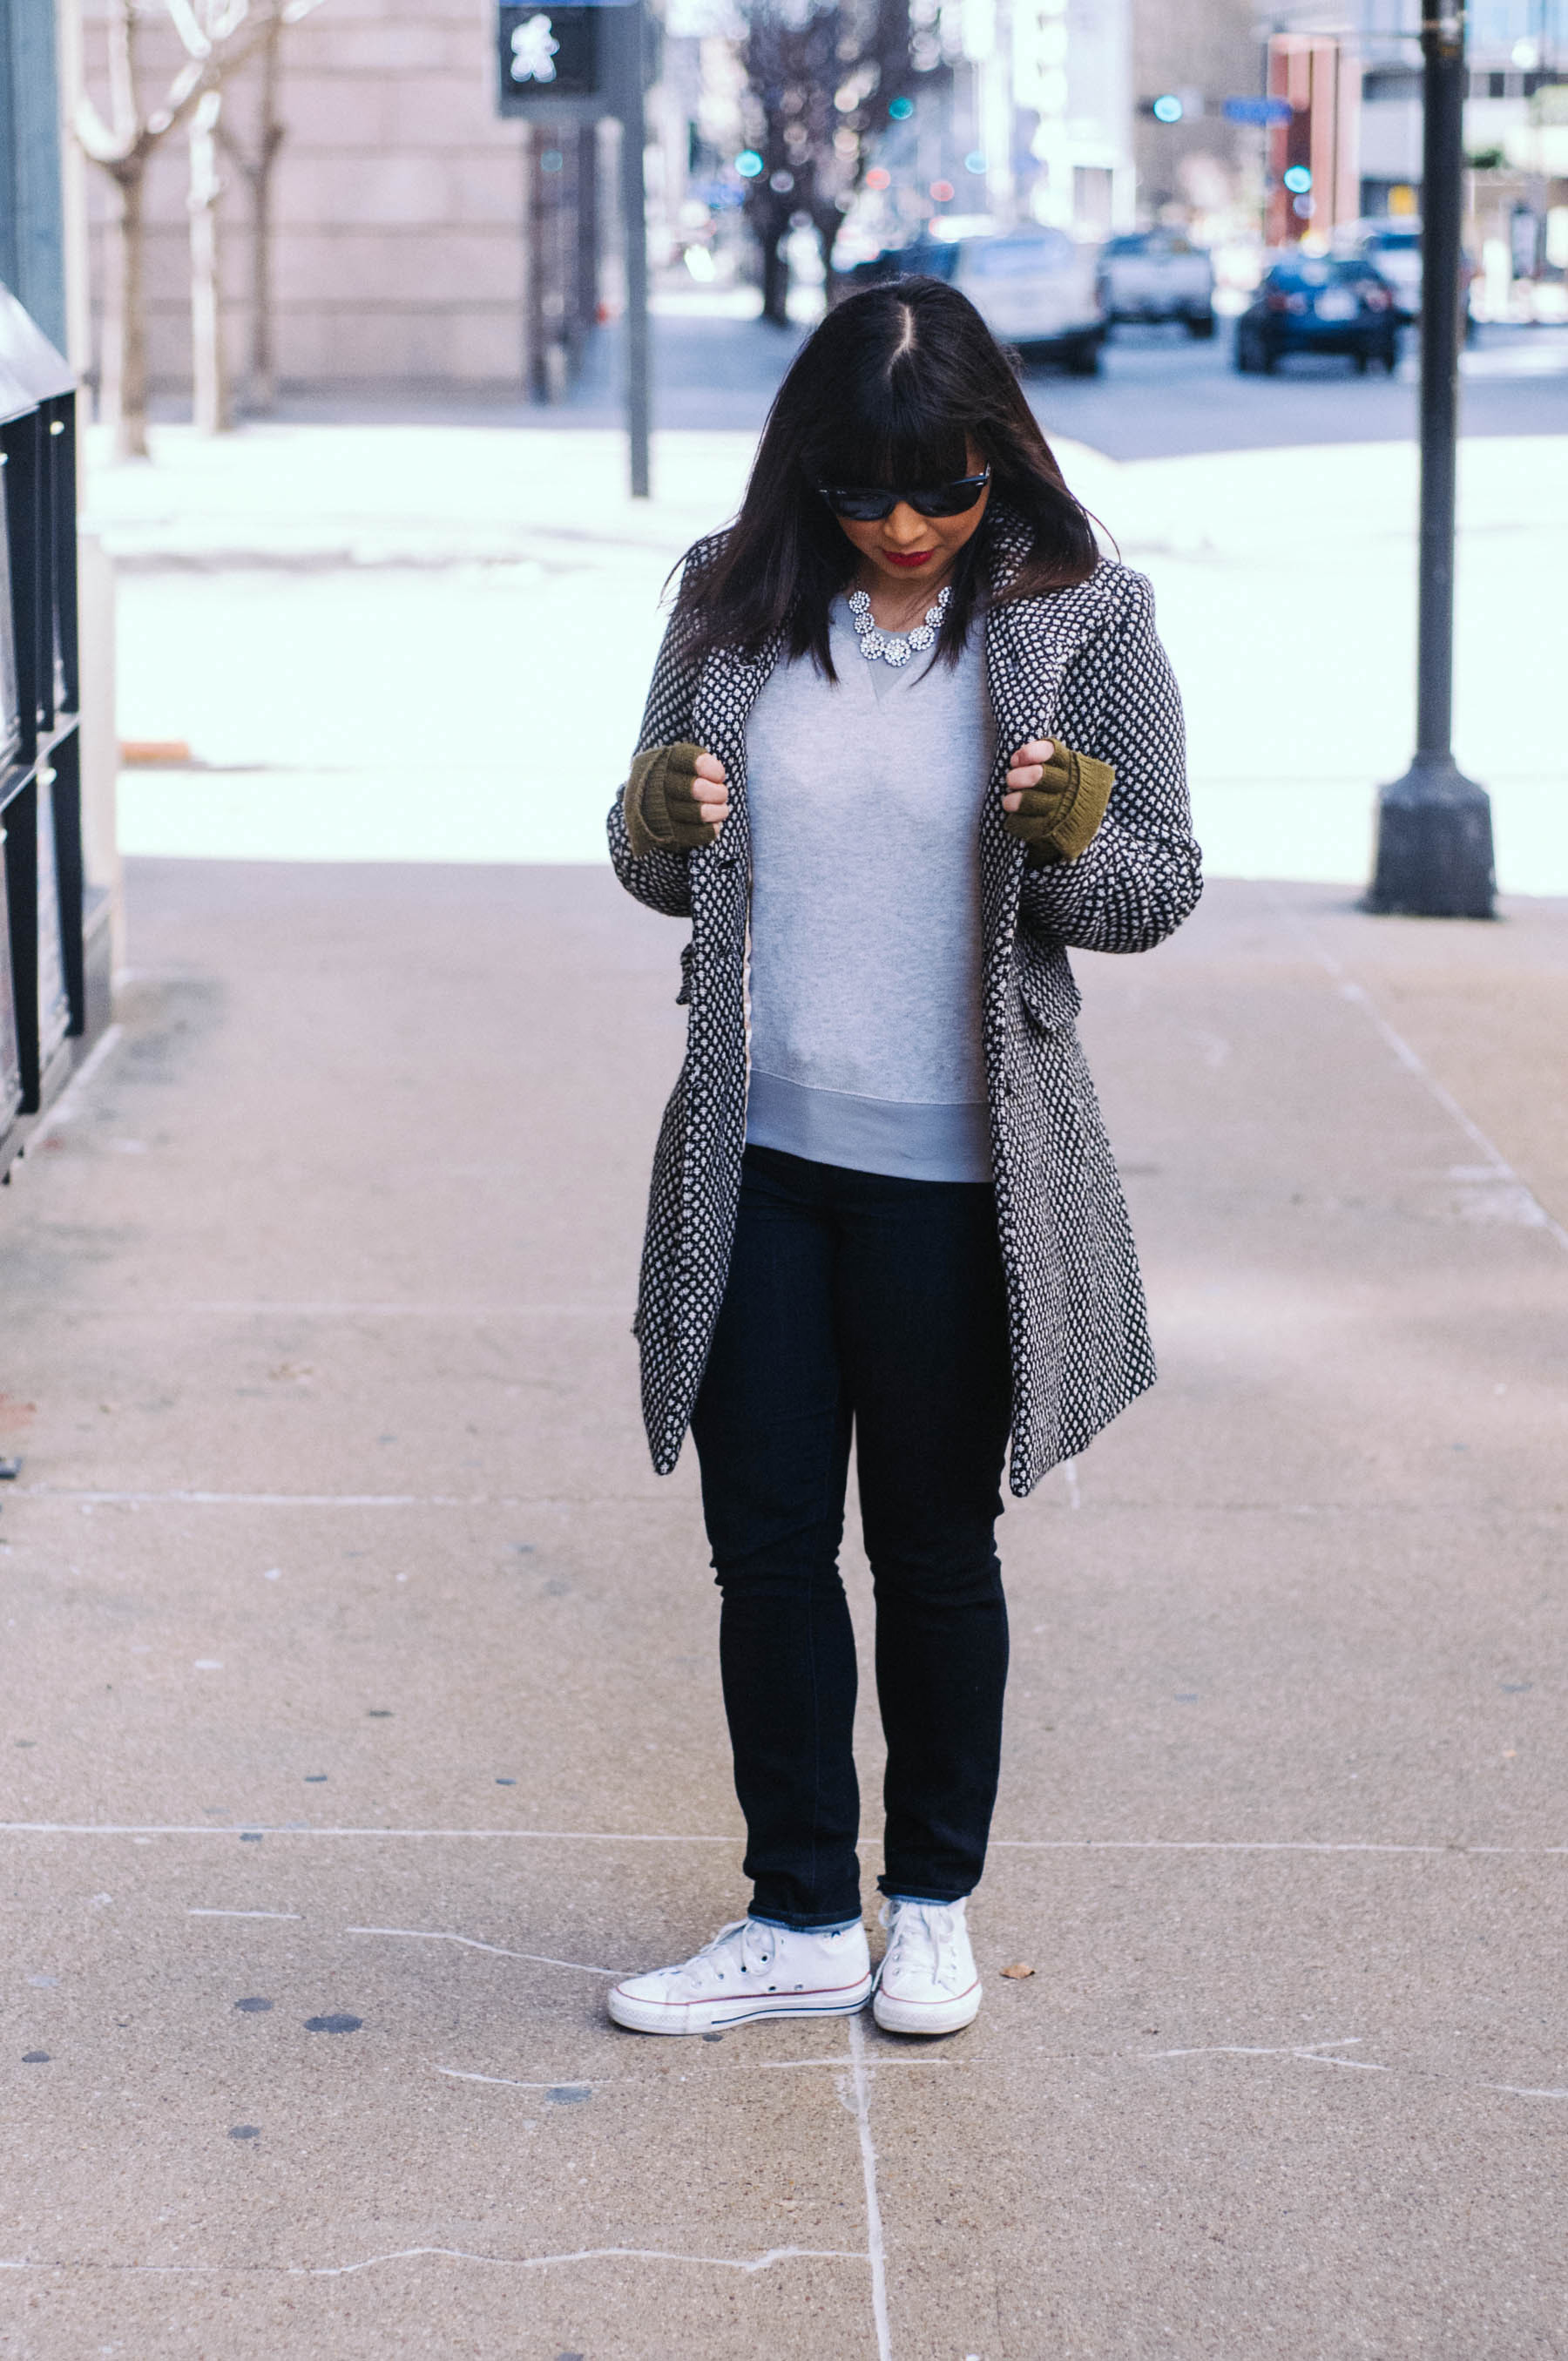 Coat: Coffeeshop NYC (similar  here )   Sweater:  Mossimo    Jeans:  Madewell    Sneakers:  Converse    Gloves: J.Crew (similar  here )   Necklace: Forever 21   Sunglasses:  RayBan